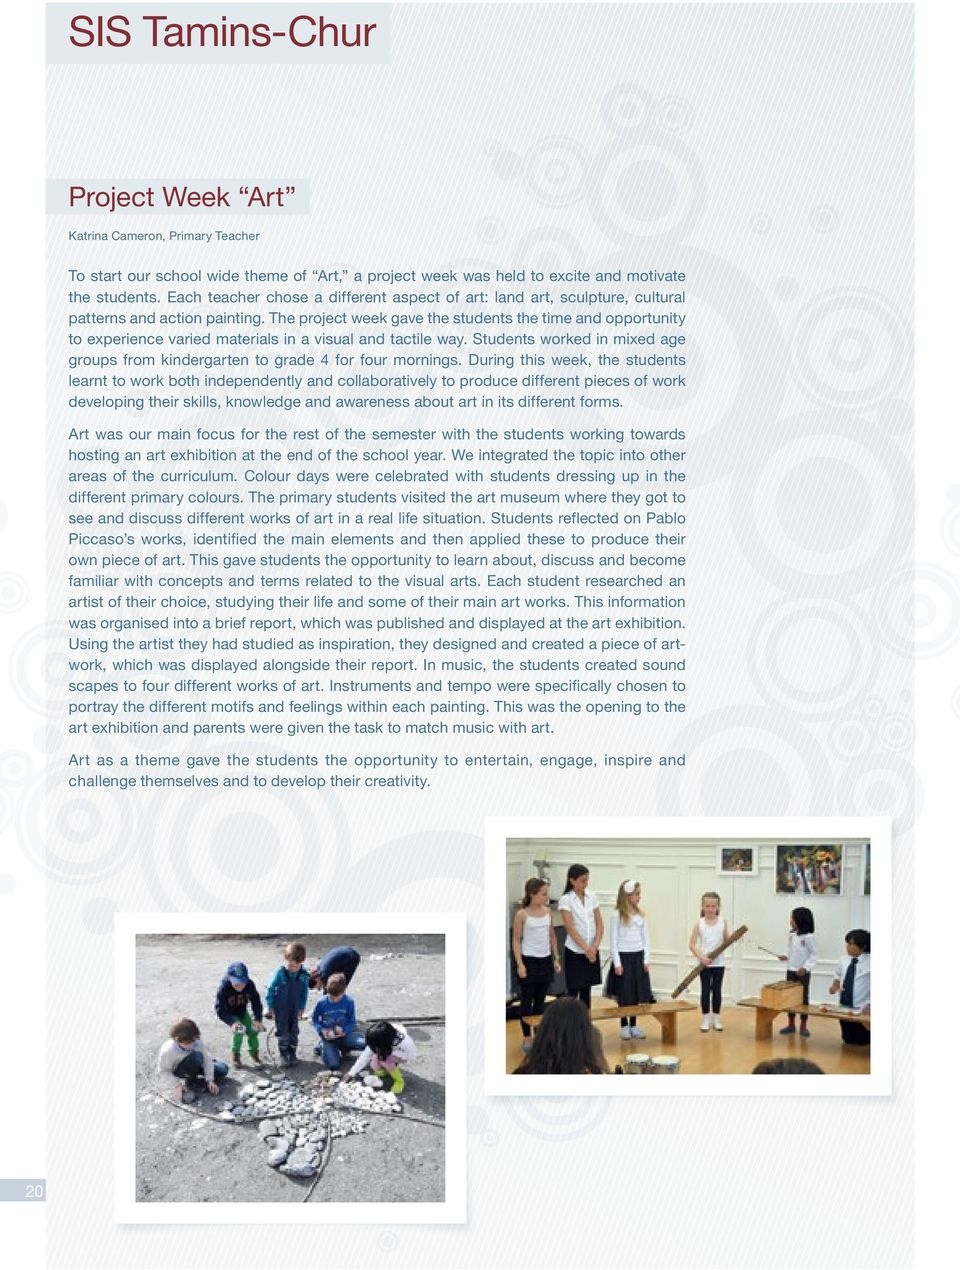 The project week gave the students the time and opportunity to experience varied materials in a visual and tactile way.